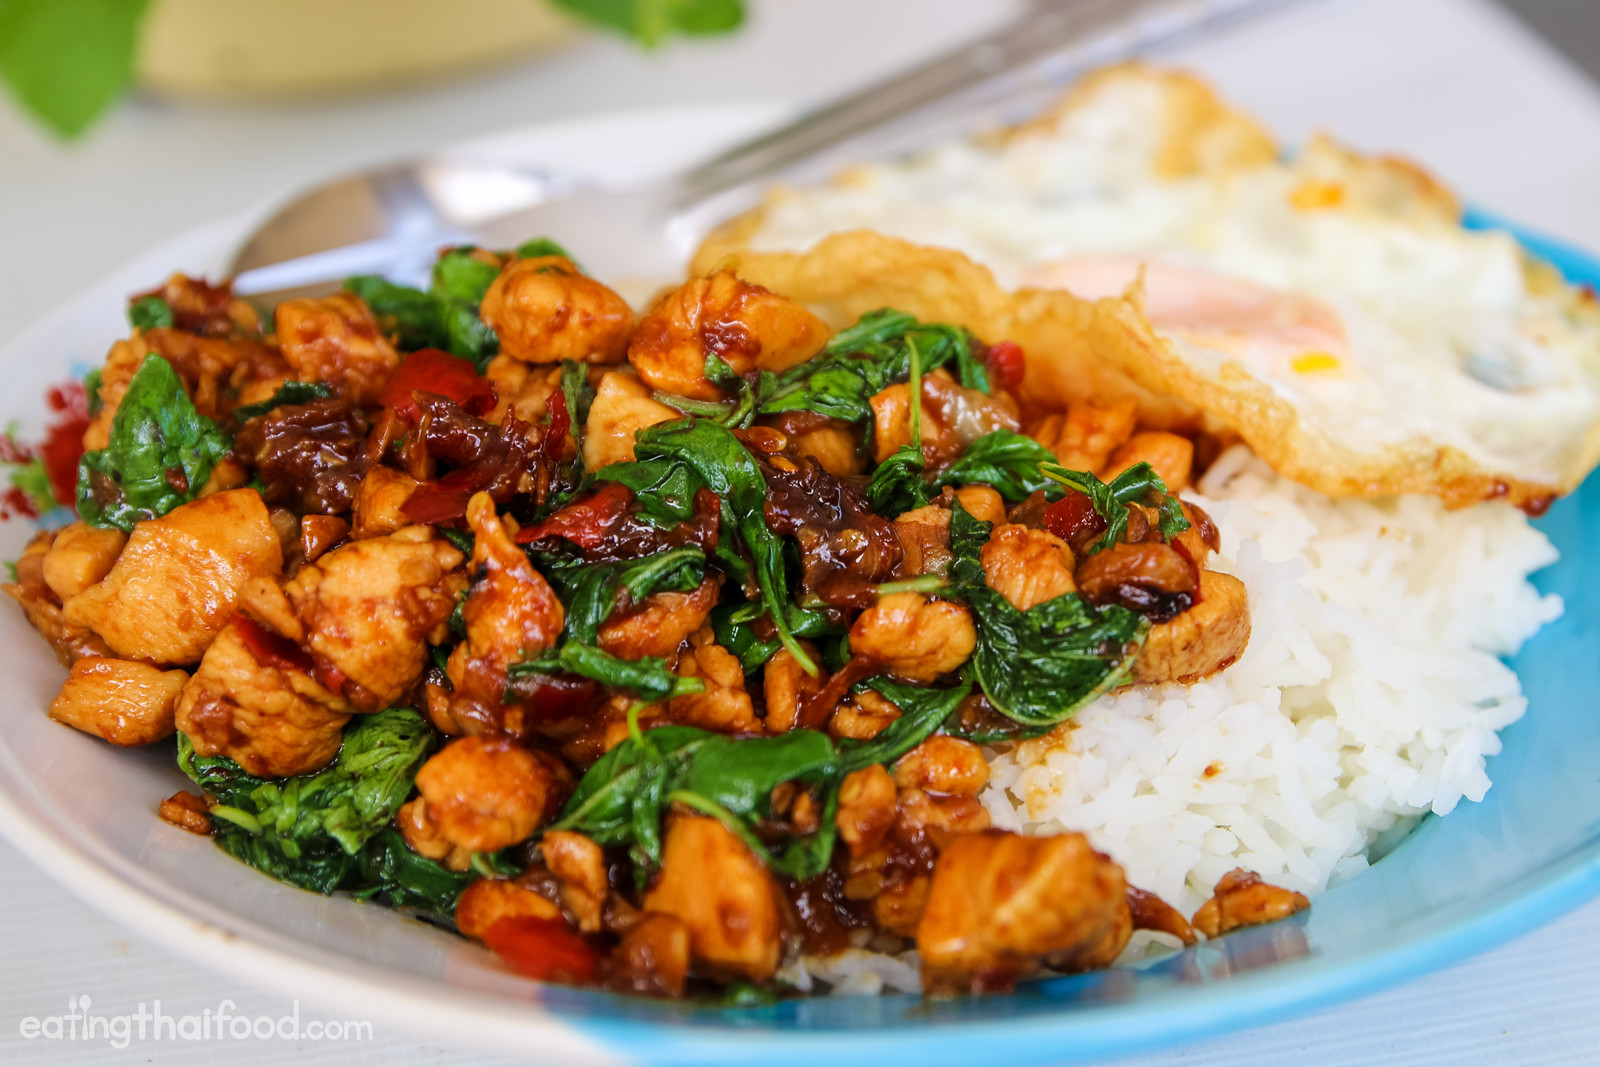 Thai Basil Recipes  Thai Food Is Healthy And Delicious And It Can Be Cooked